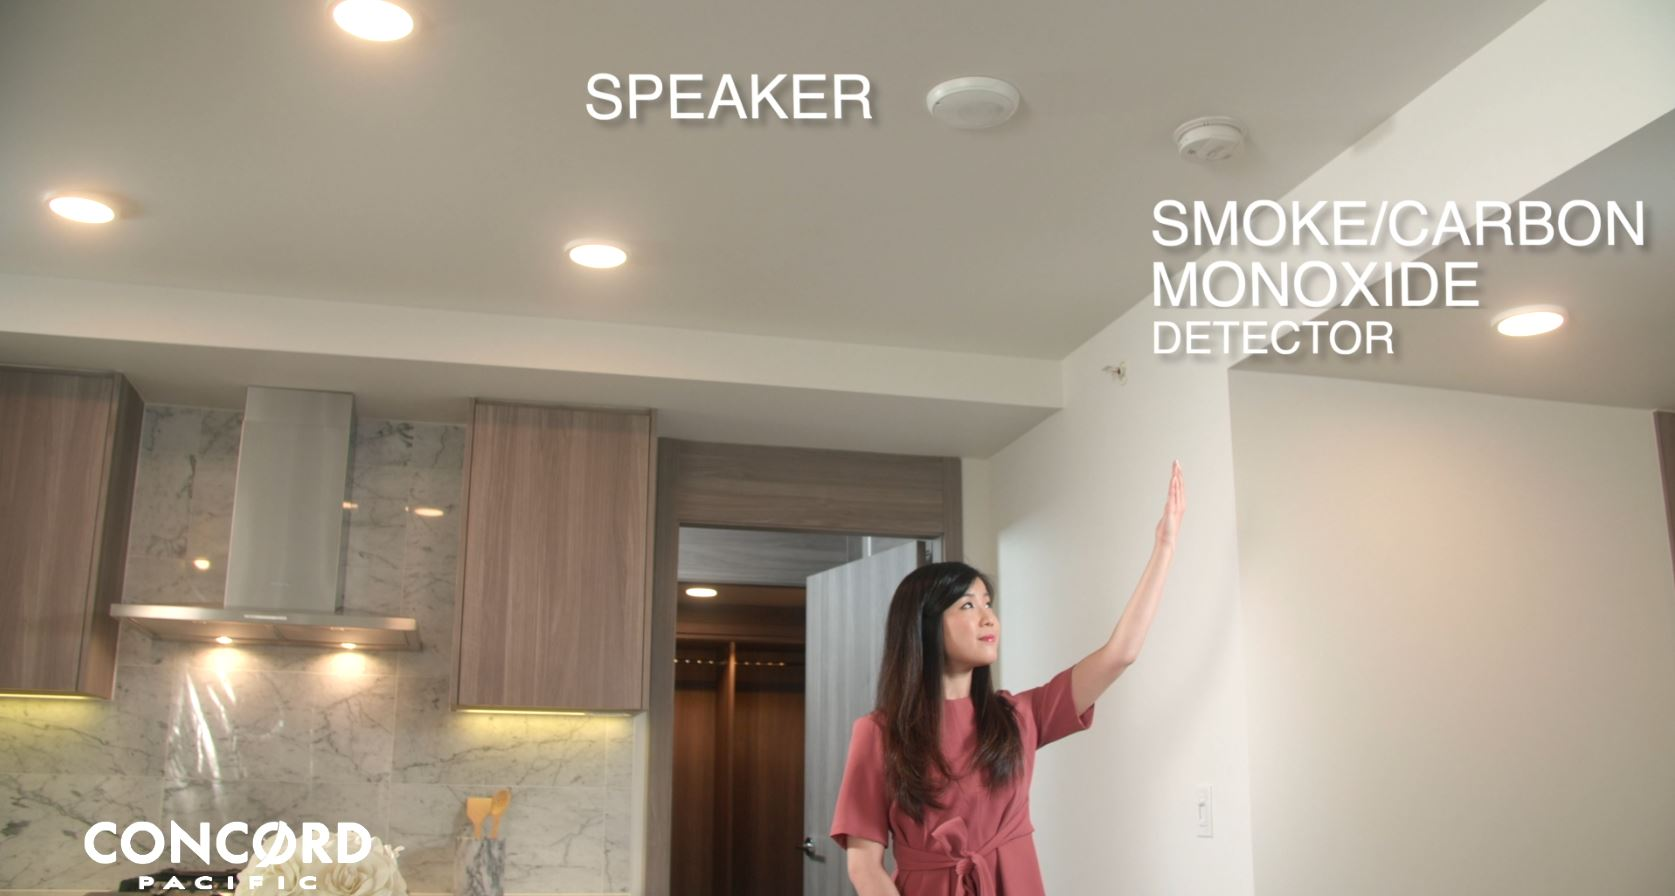 Smoke Detector & Speaker Location